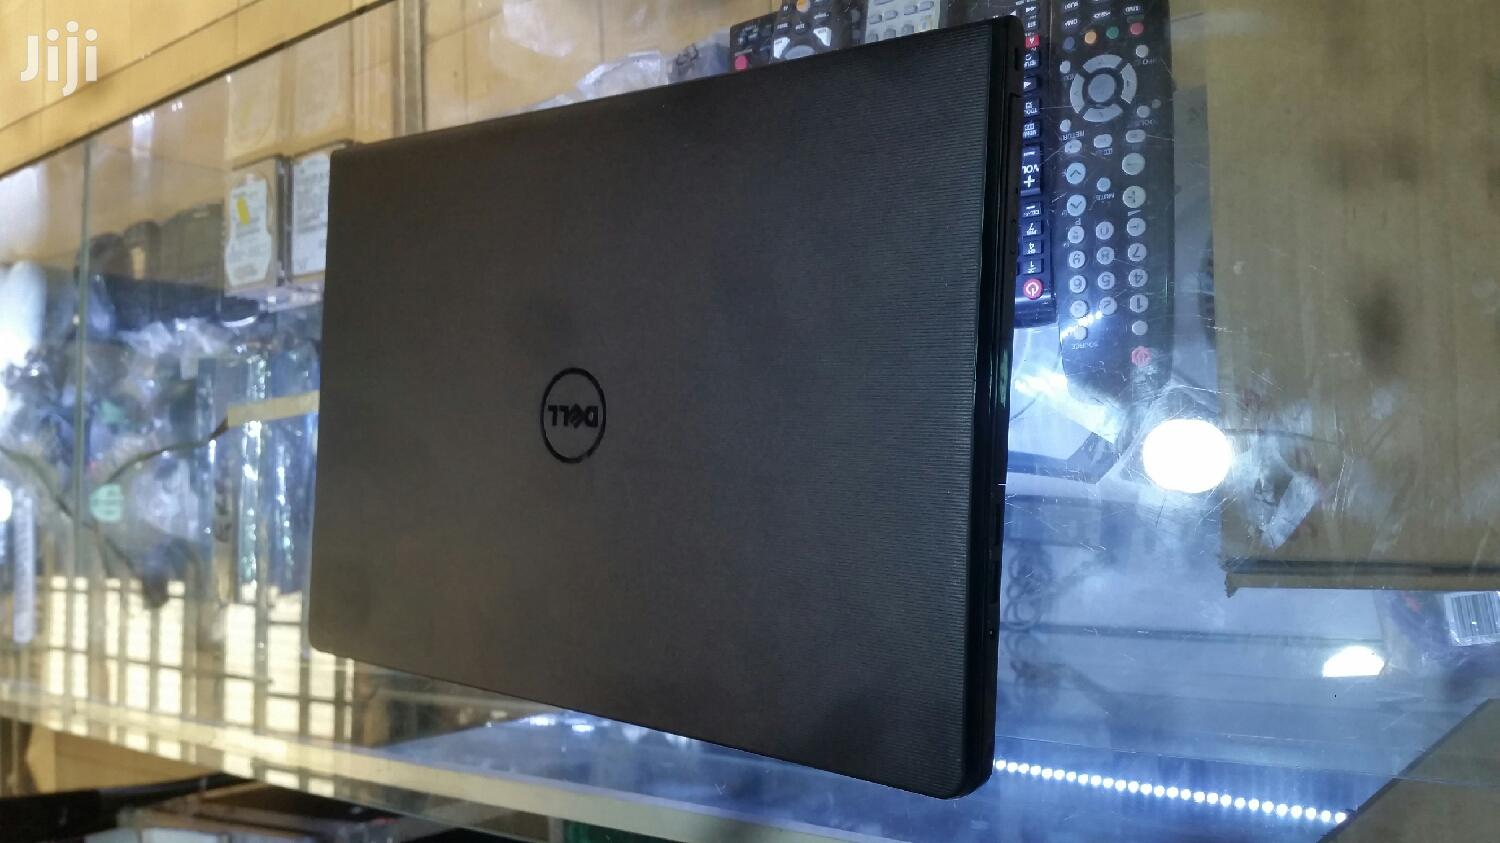 Laptop Dell Inspiron 17R N7110 4GB Intel Core i3 HDD 500GB | Laptops & Computers for sale in Kampala, Central Region, Uganda